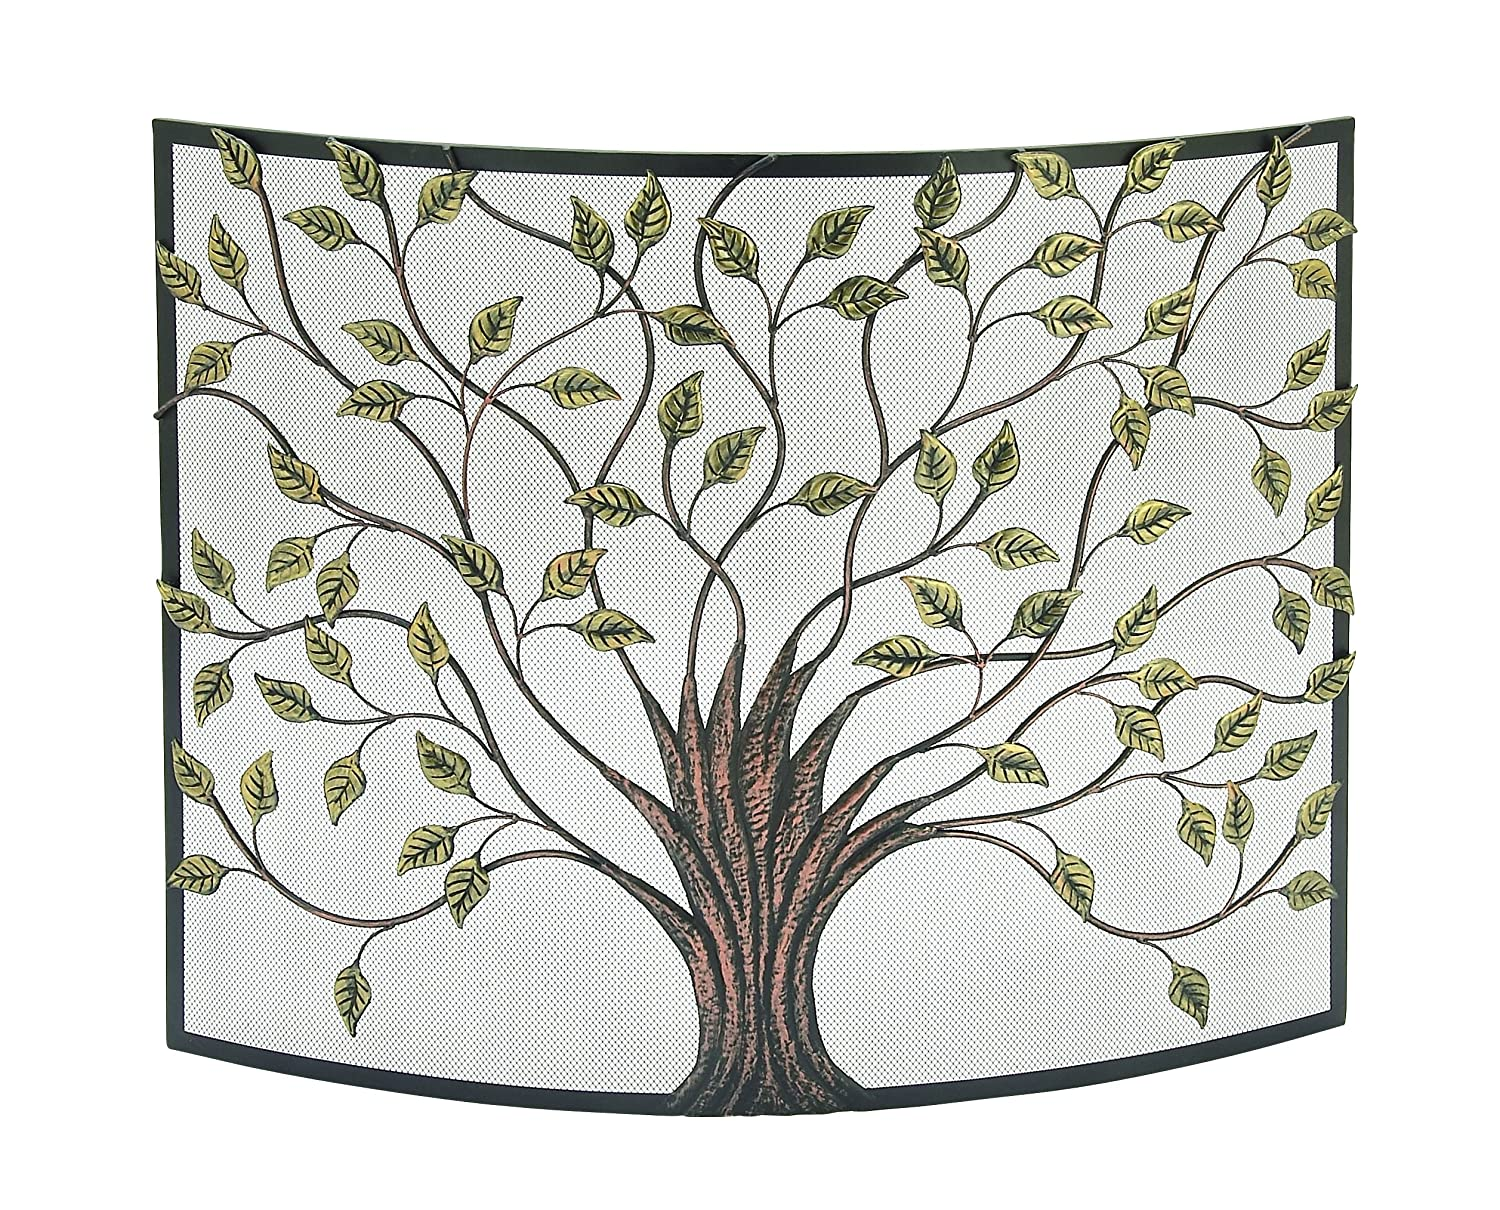 Deco 79 44543 Nature-Inspired Colored Iron Fire Screen, 33